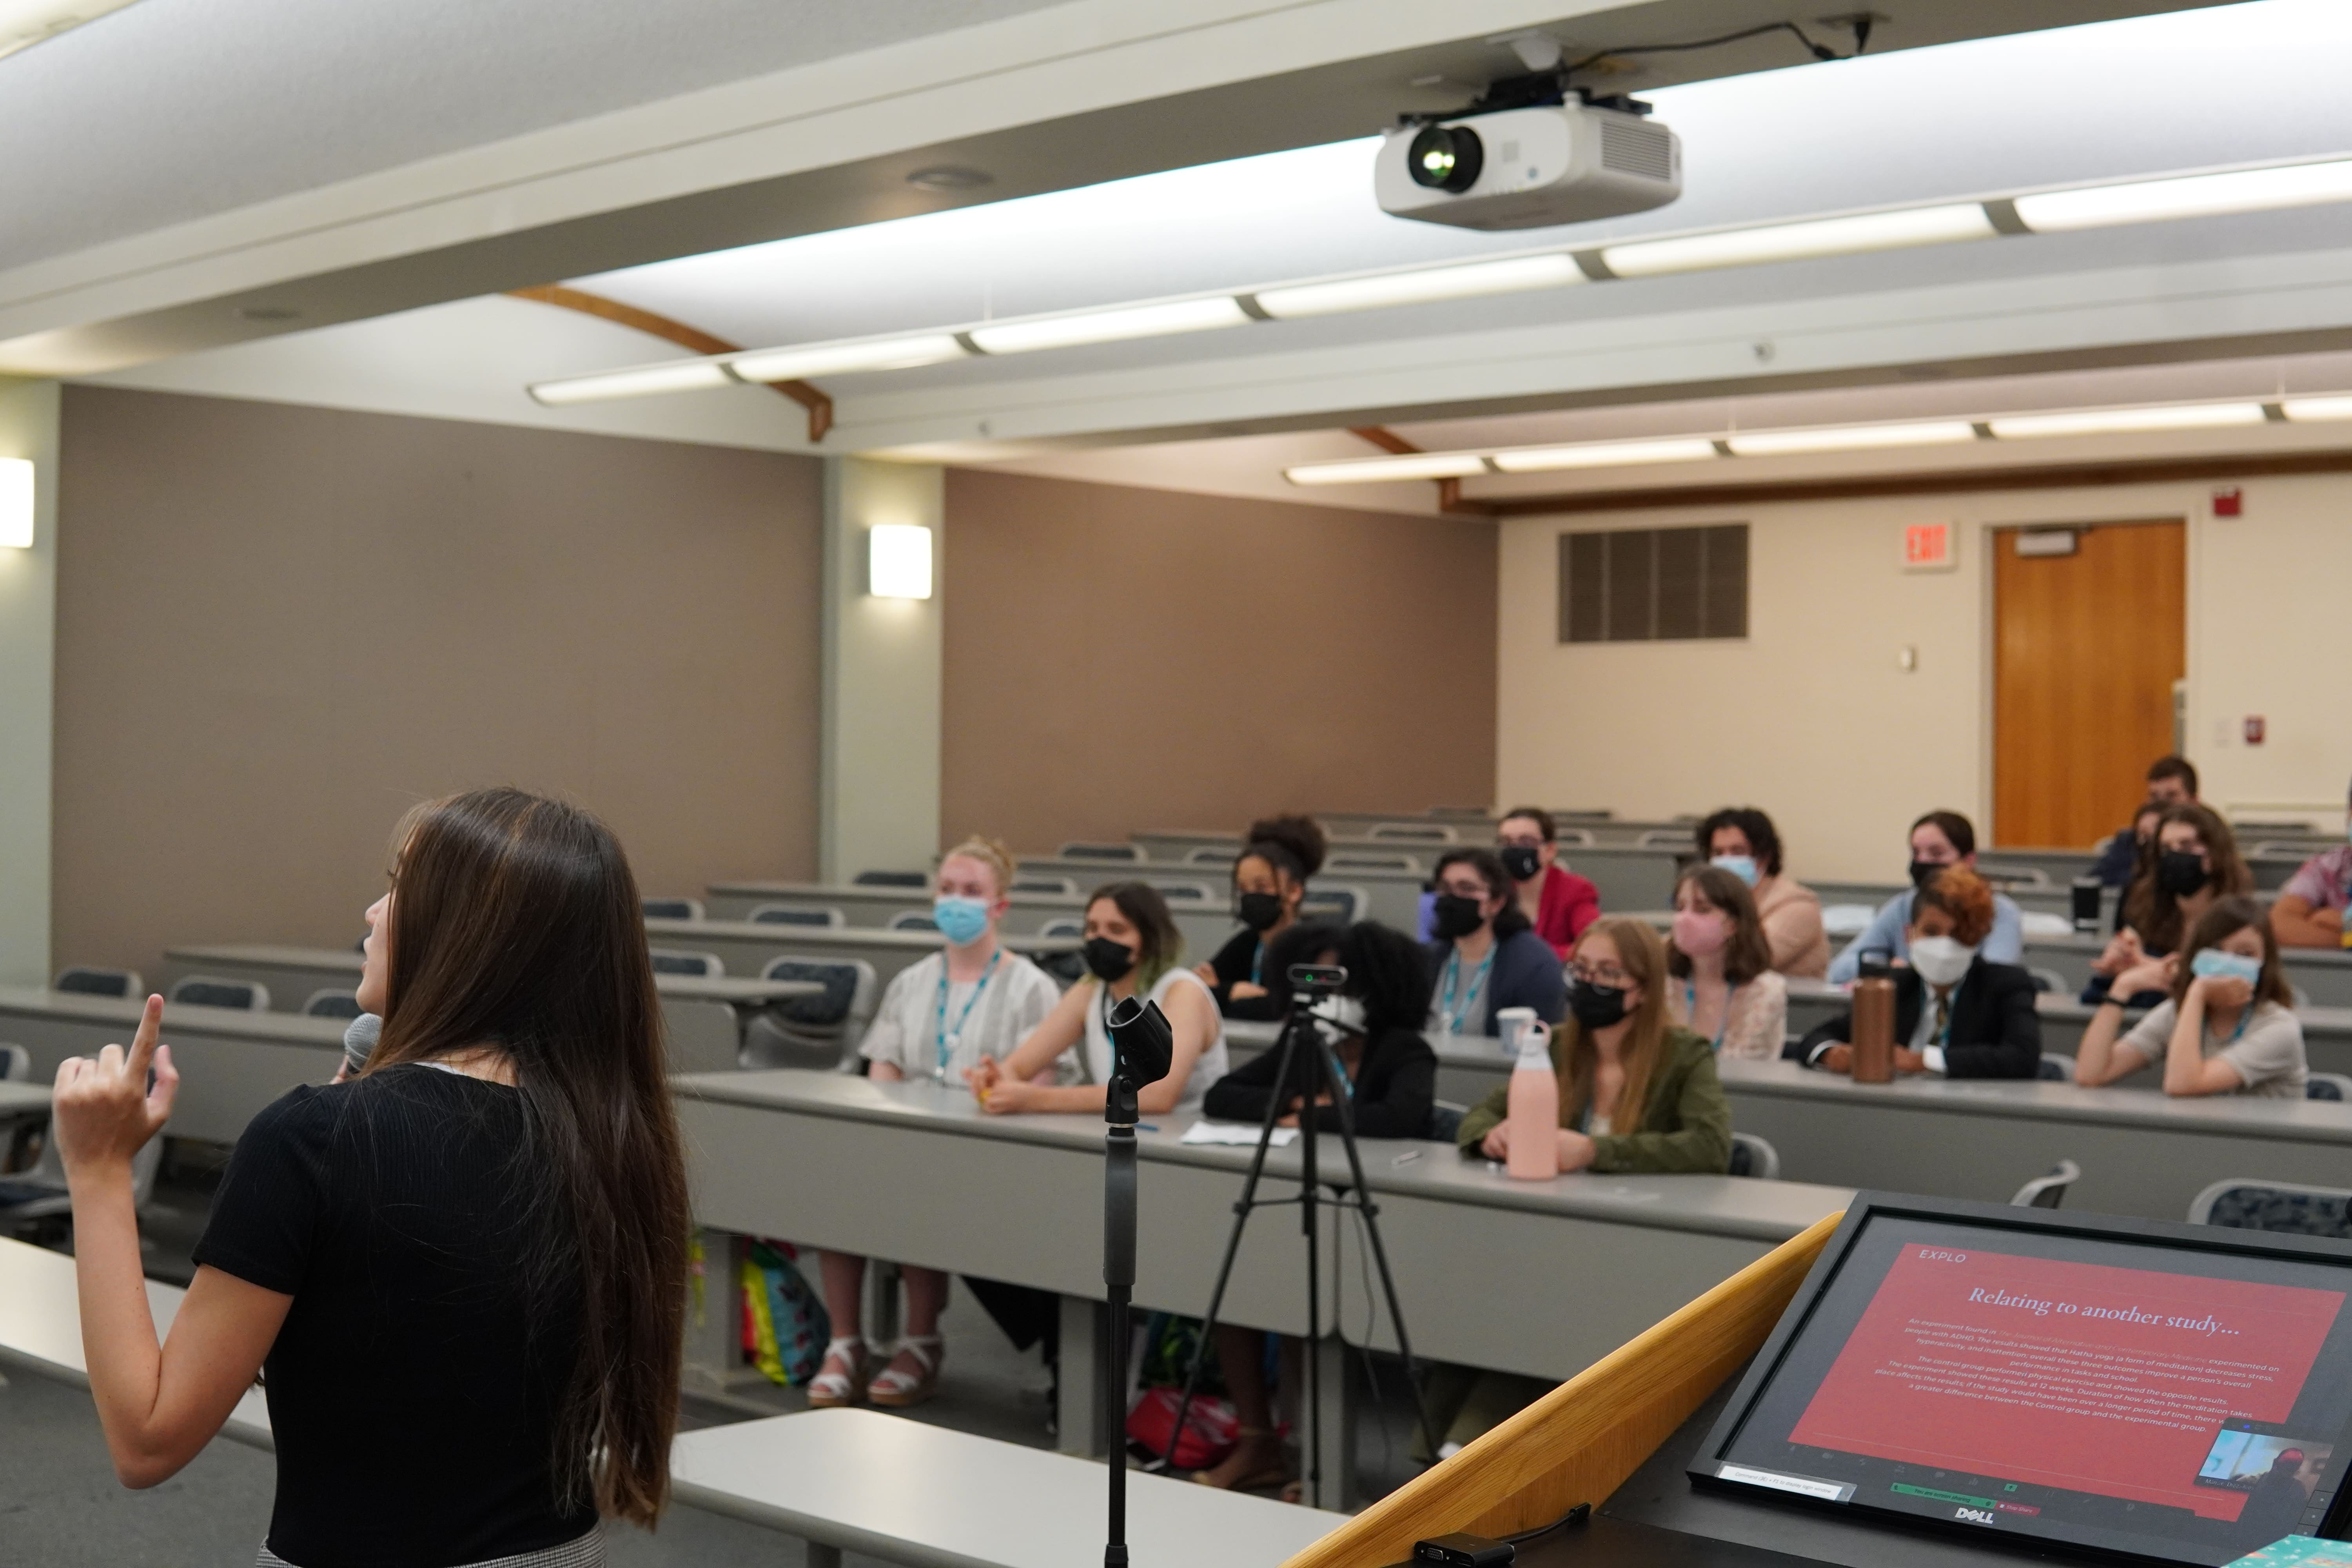 The student gestures toward information behind them as they present to their peers and instructors in front of them, and experts watching through video.